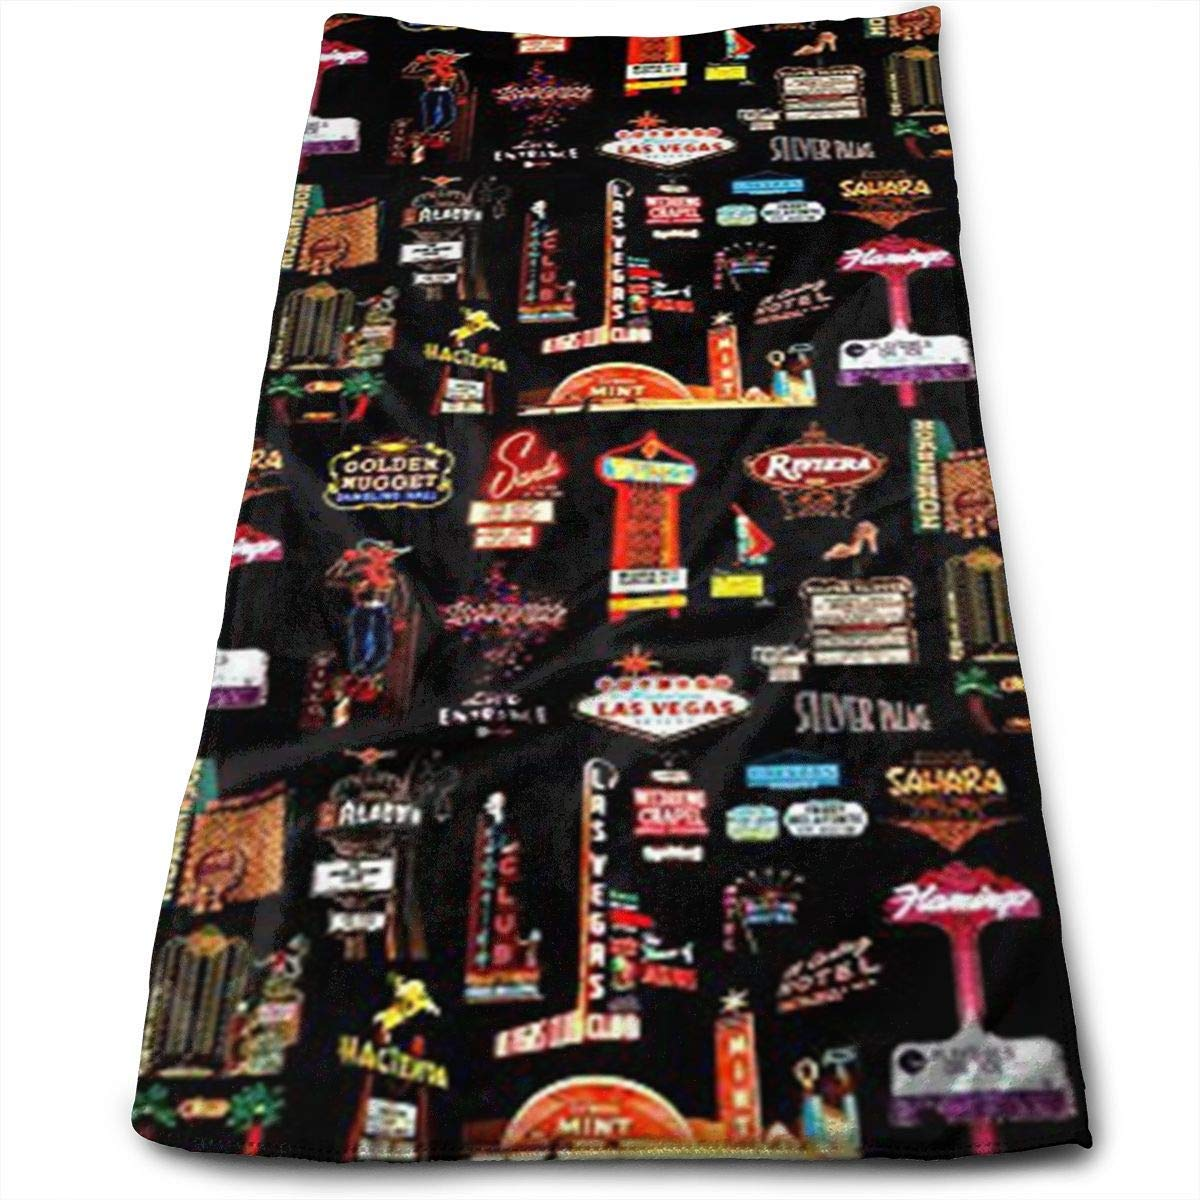 Sports Travels 11.8X27.5 Towels Best for Outdoor /& Camping ewtretr Prime Torchons De Cuisine Quick Drying and Super Absorbent Technology Las Vegas Microfiber Beach Towel Large /& Oversized